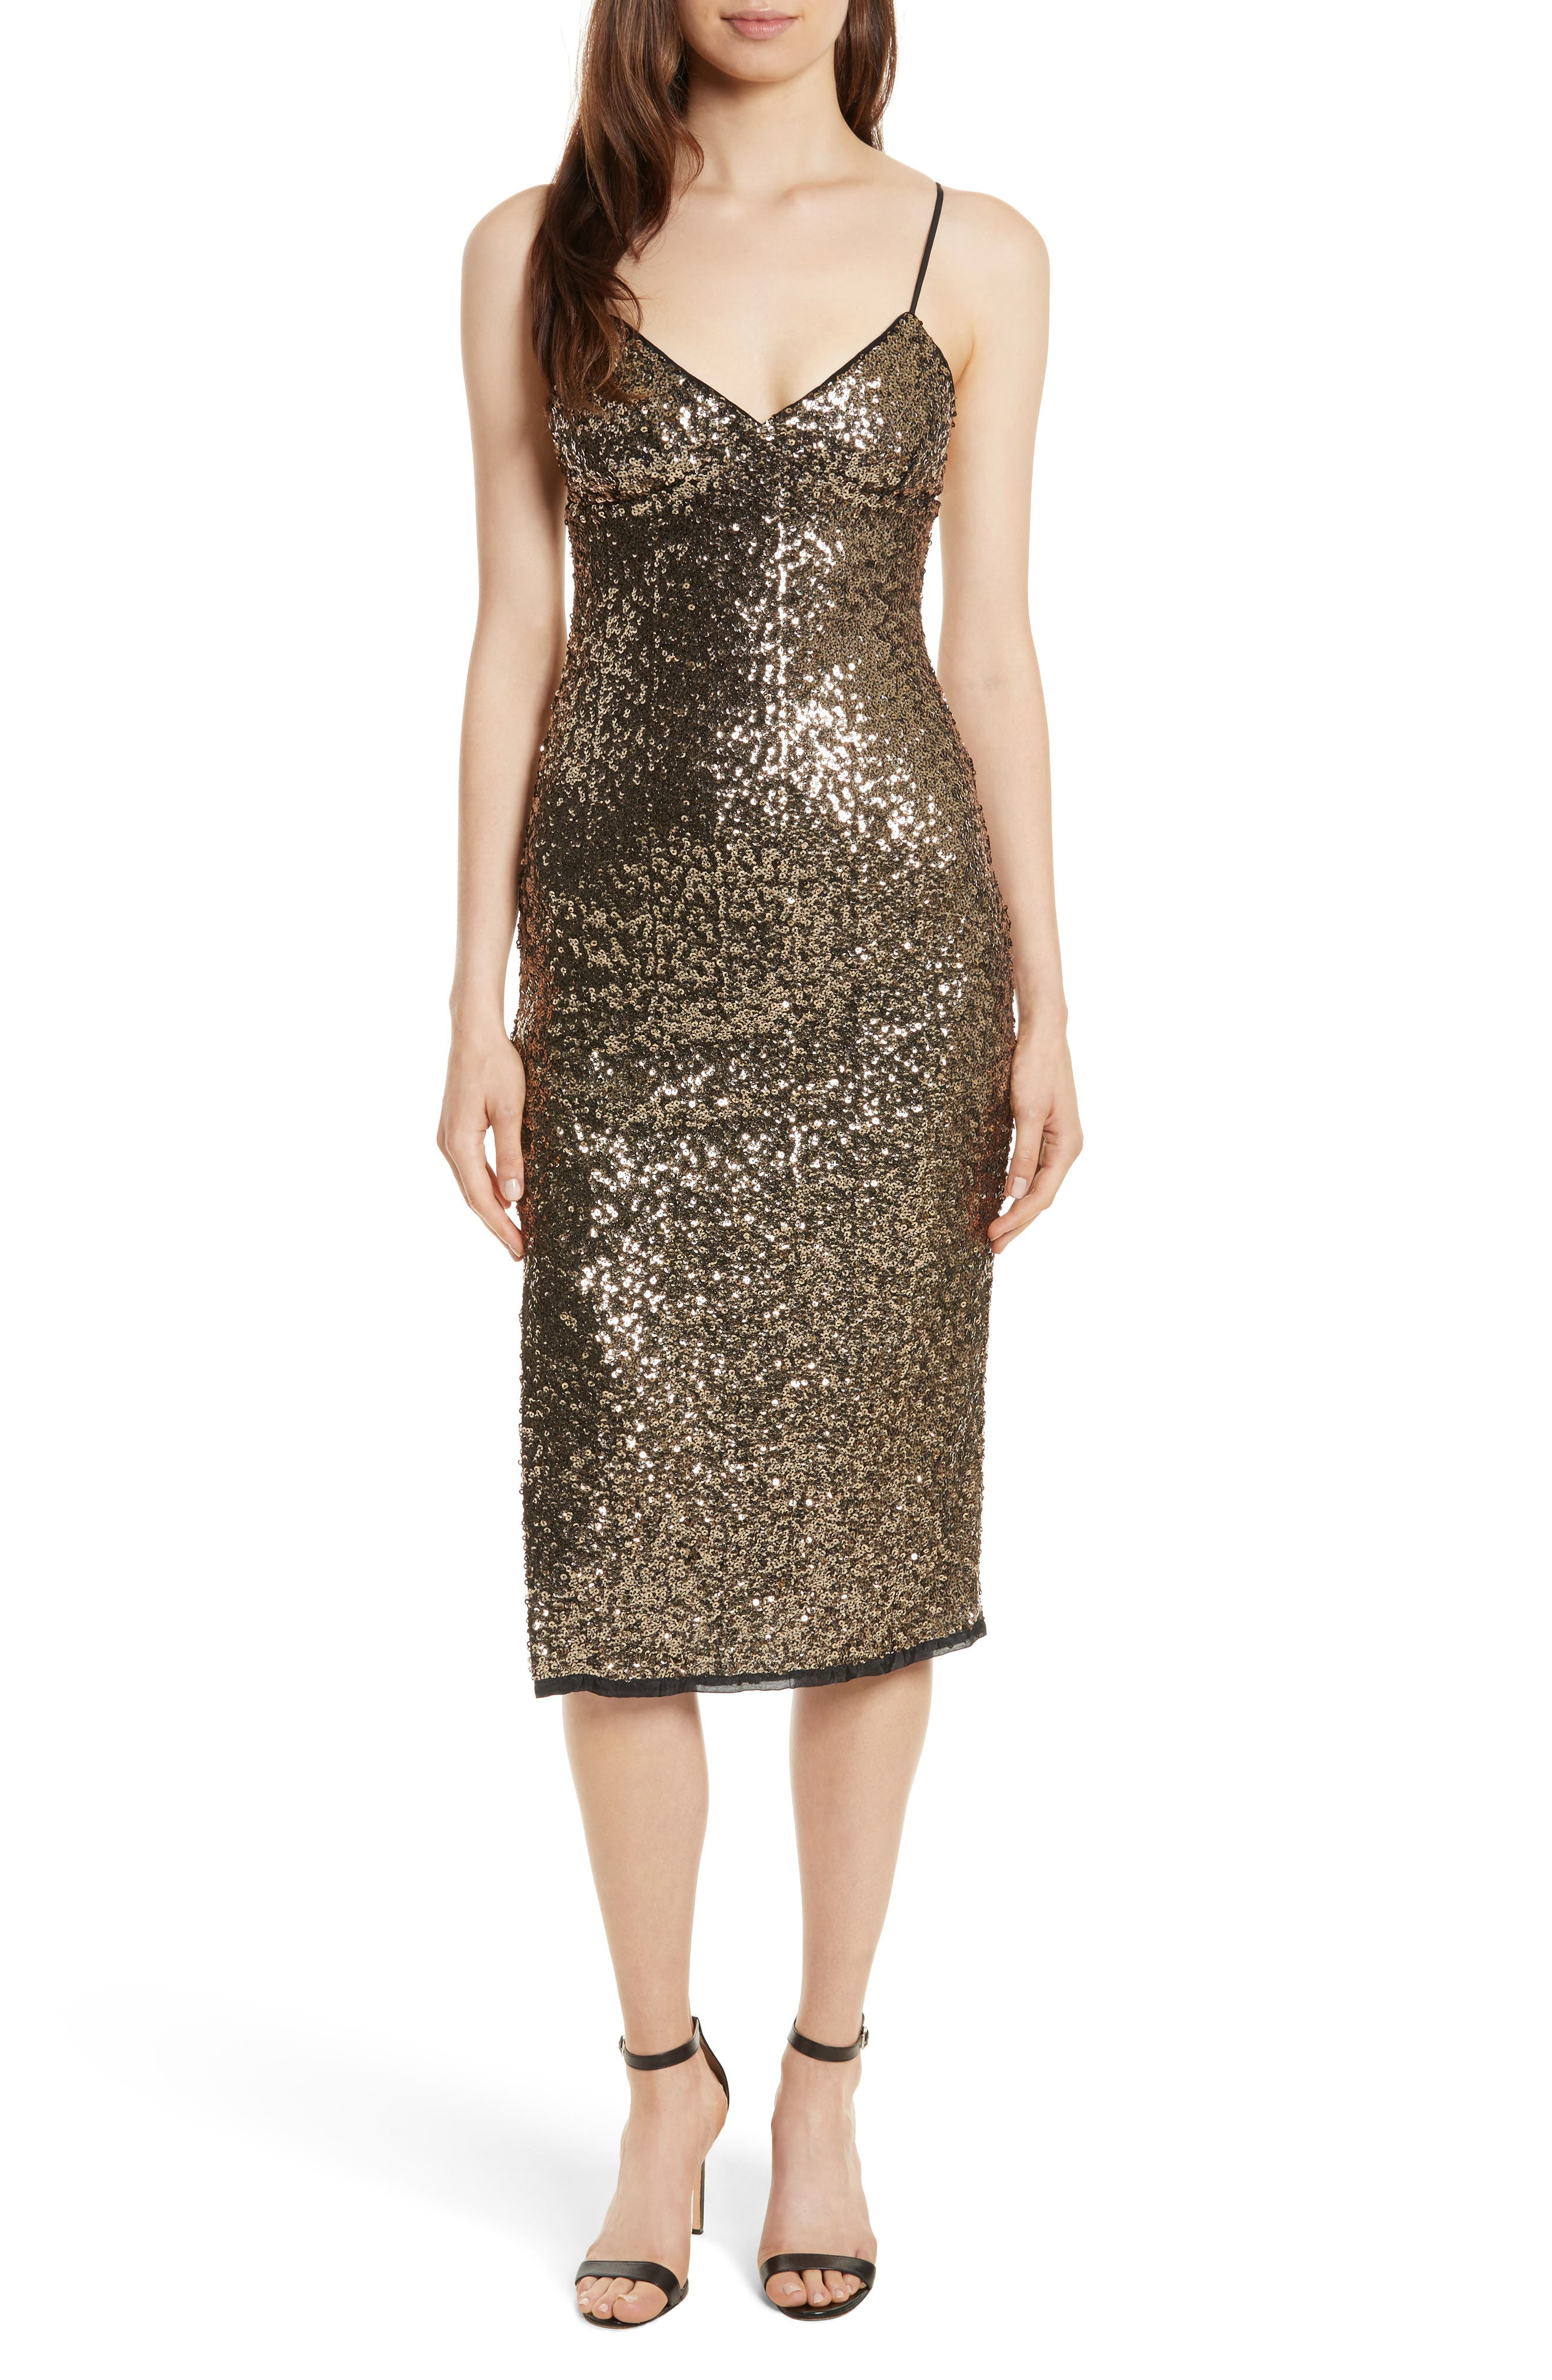 Alternate Image 1 Selected - Milly Alexis Sequin Camisole Dress